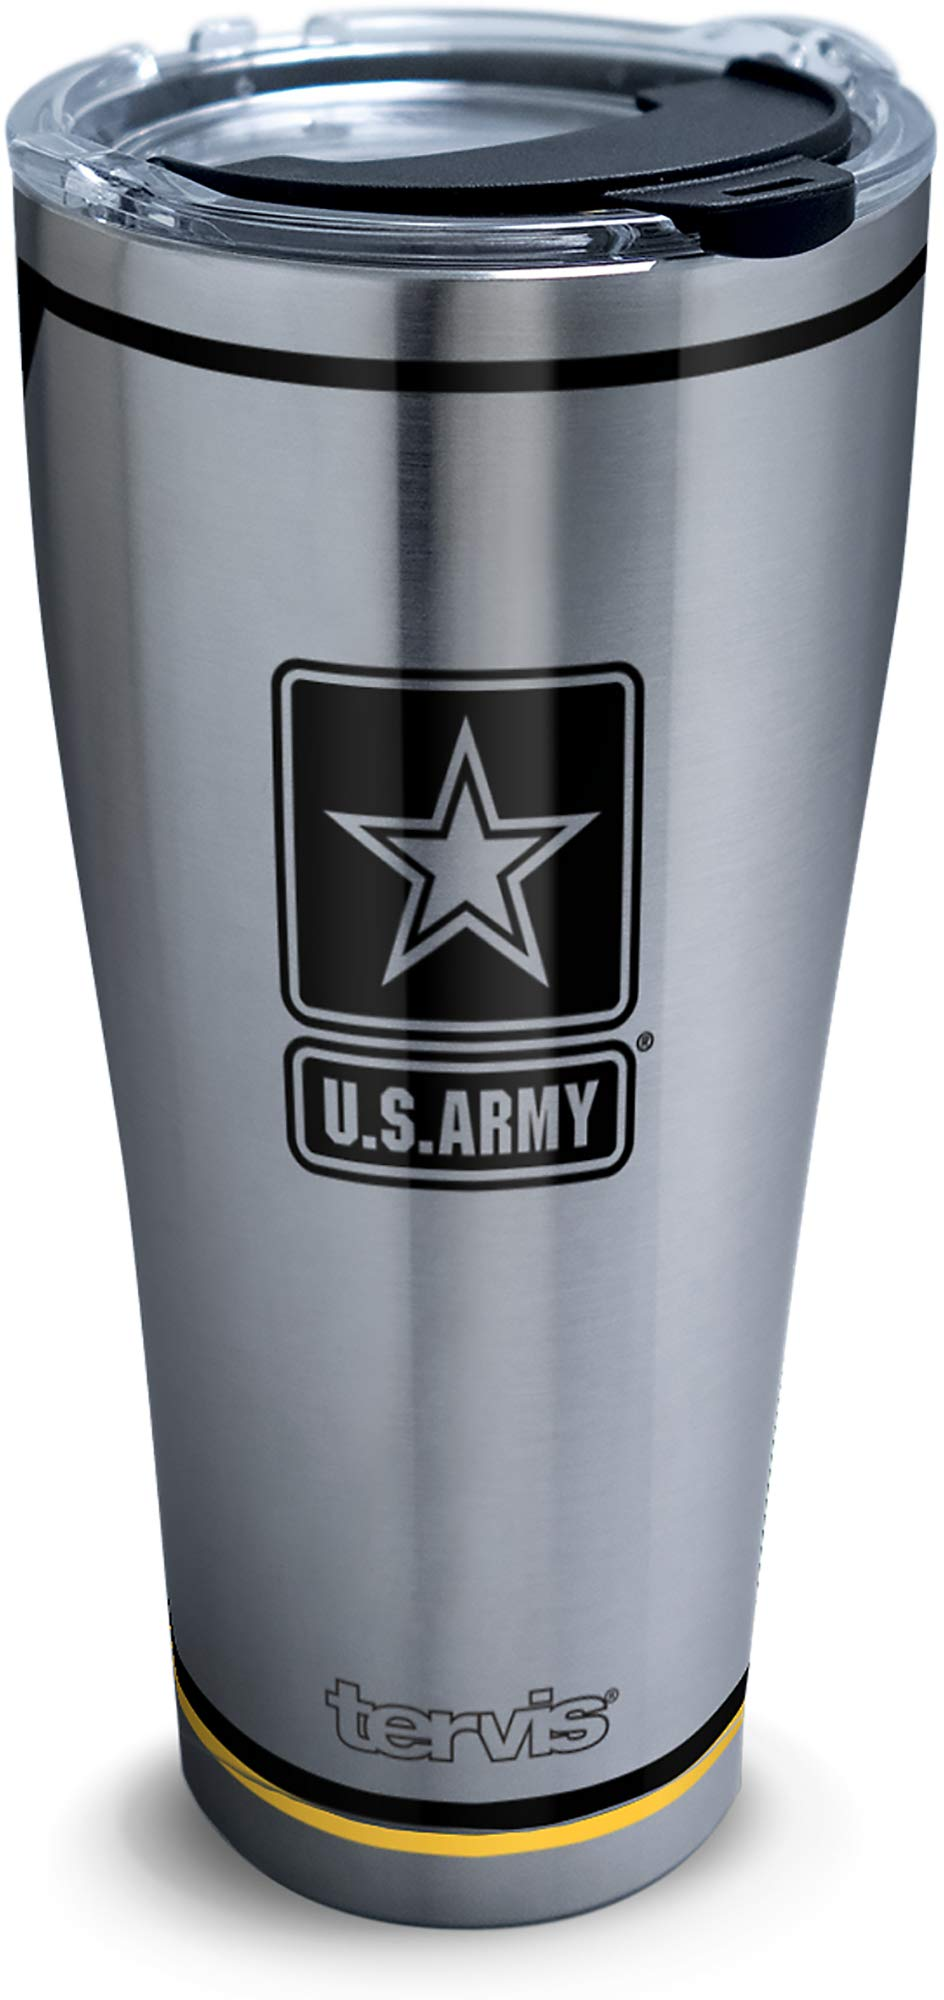 Tervis Army Forever Proud Stainless Steel Insulated Tumbler with Clear and Black Hammer Lid, 30oz, Silver